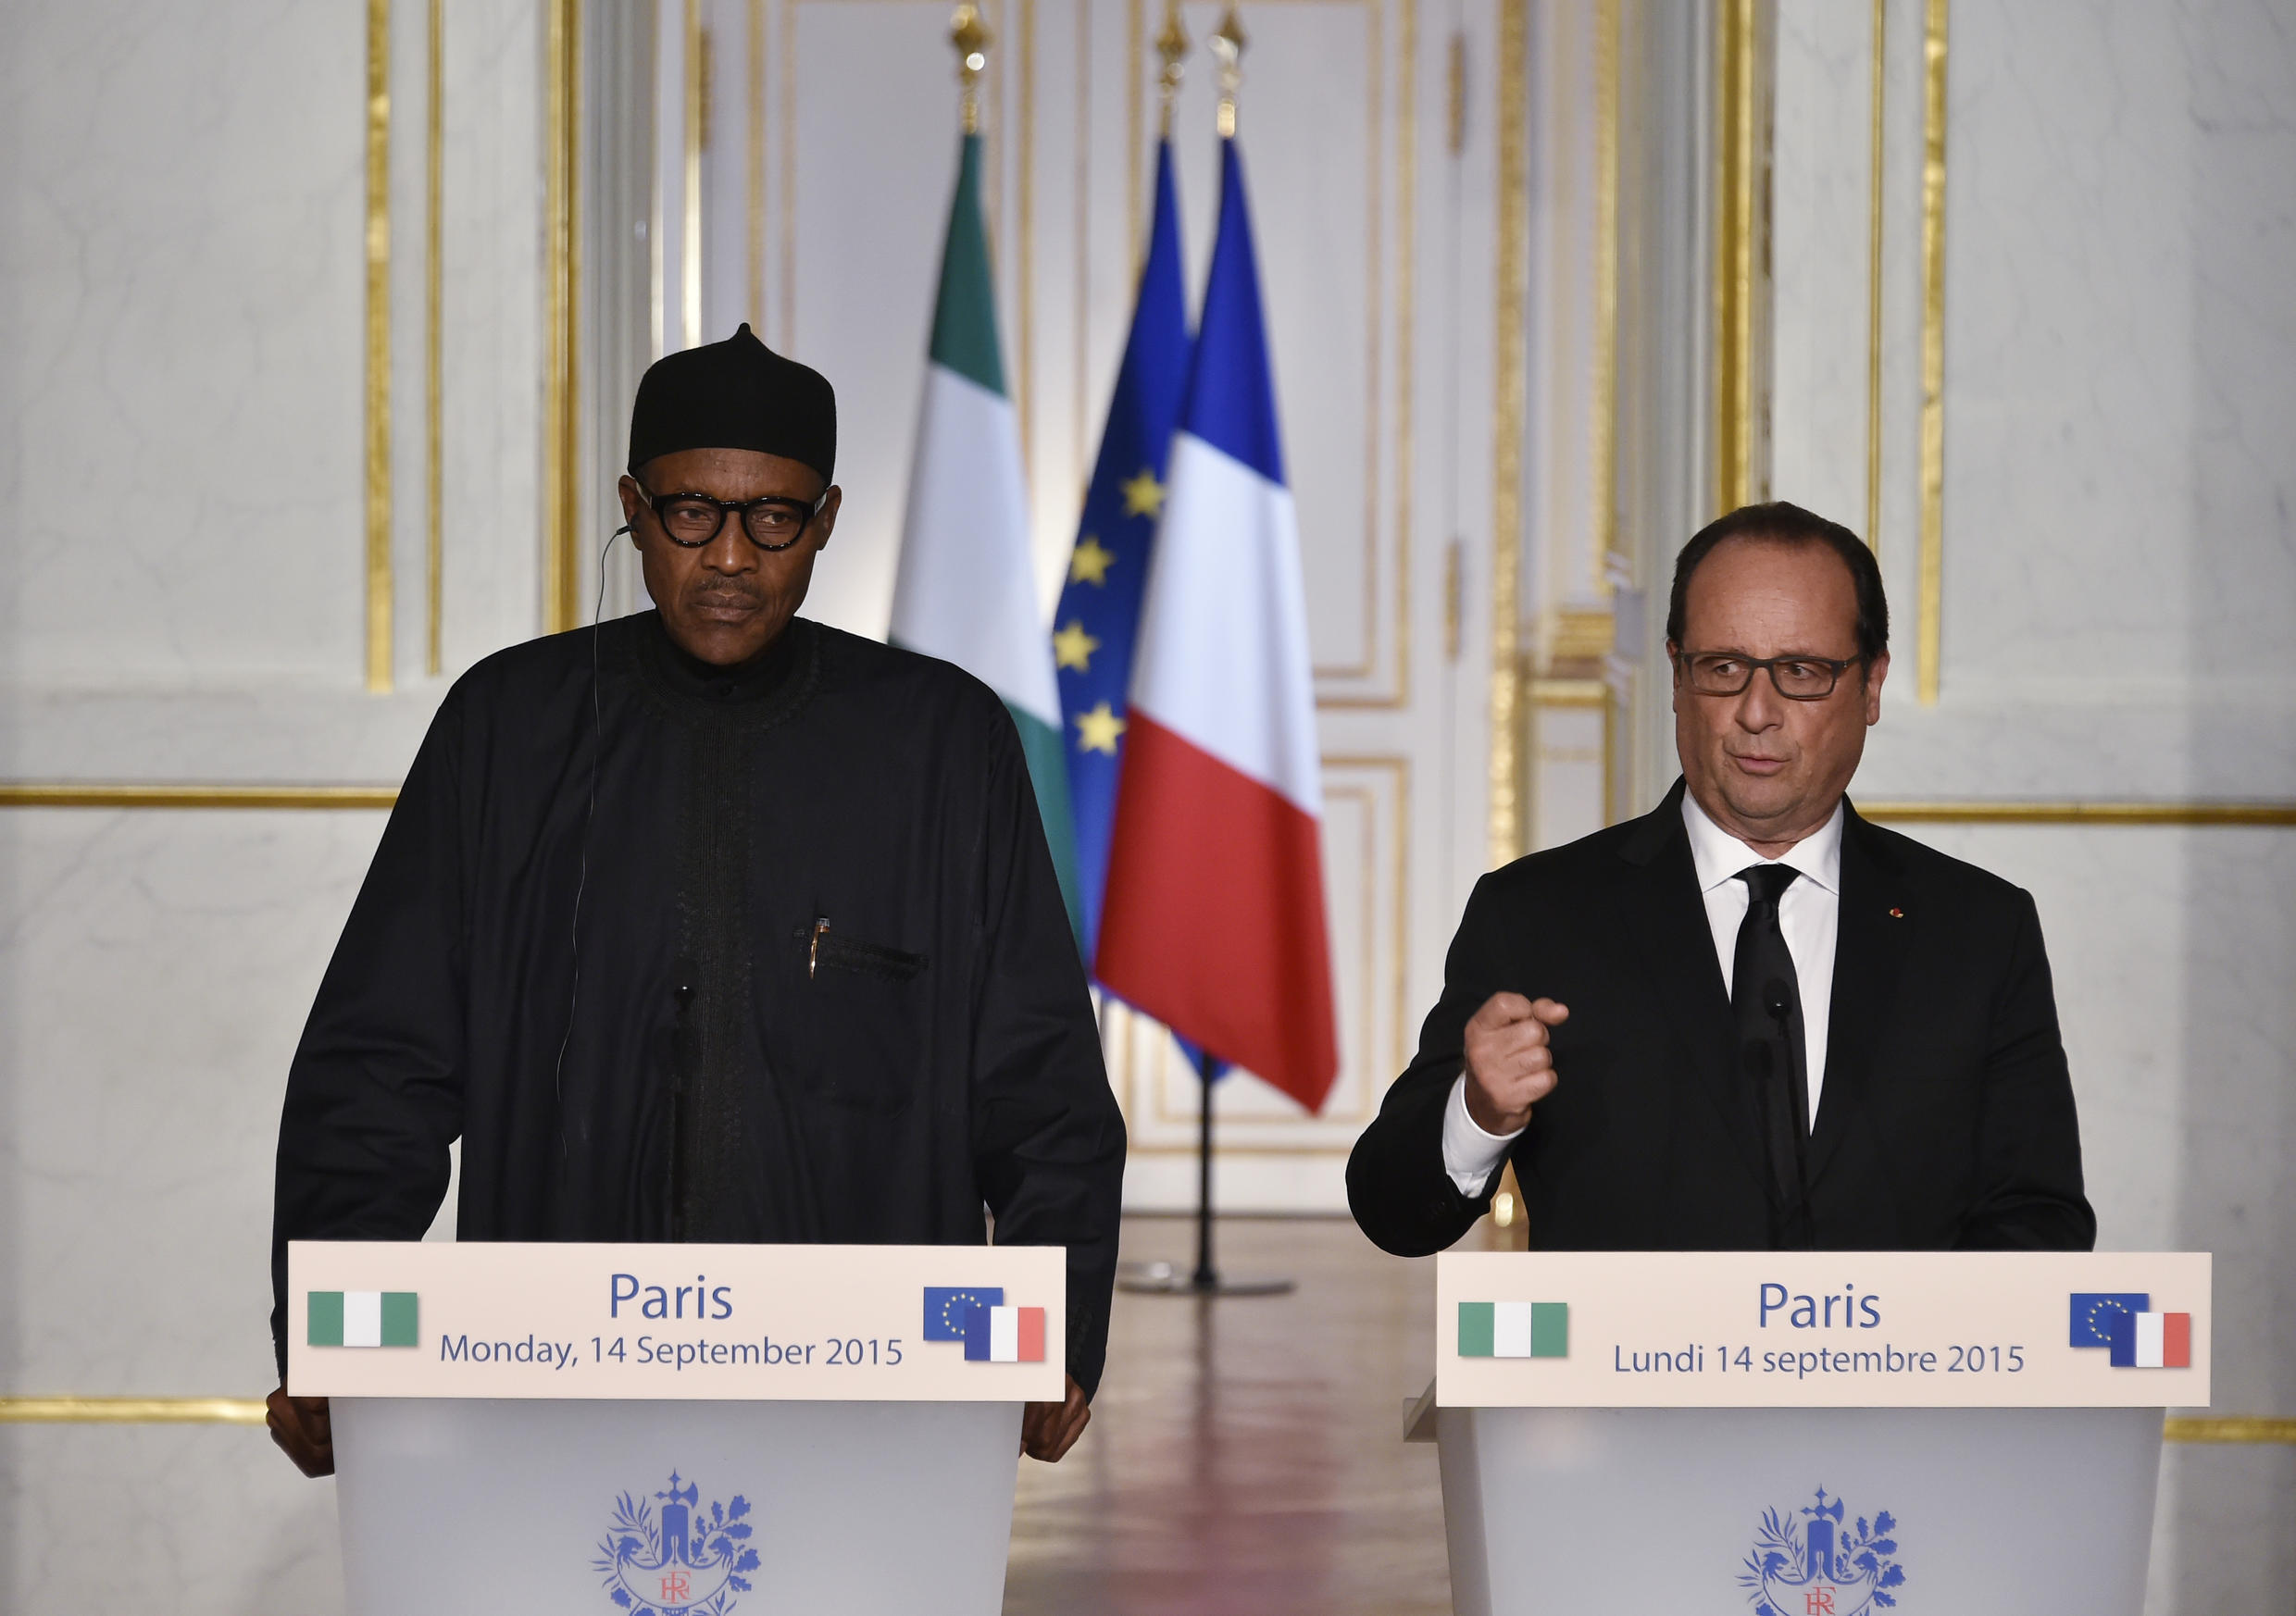 """French President François Hollande at the press conference with Nigeria's Muhammadu Buhari where he announced that air strikes on Syria were """"necessary"""""""